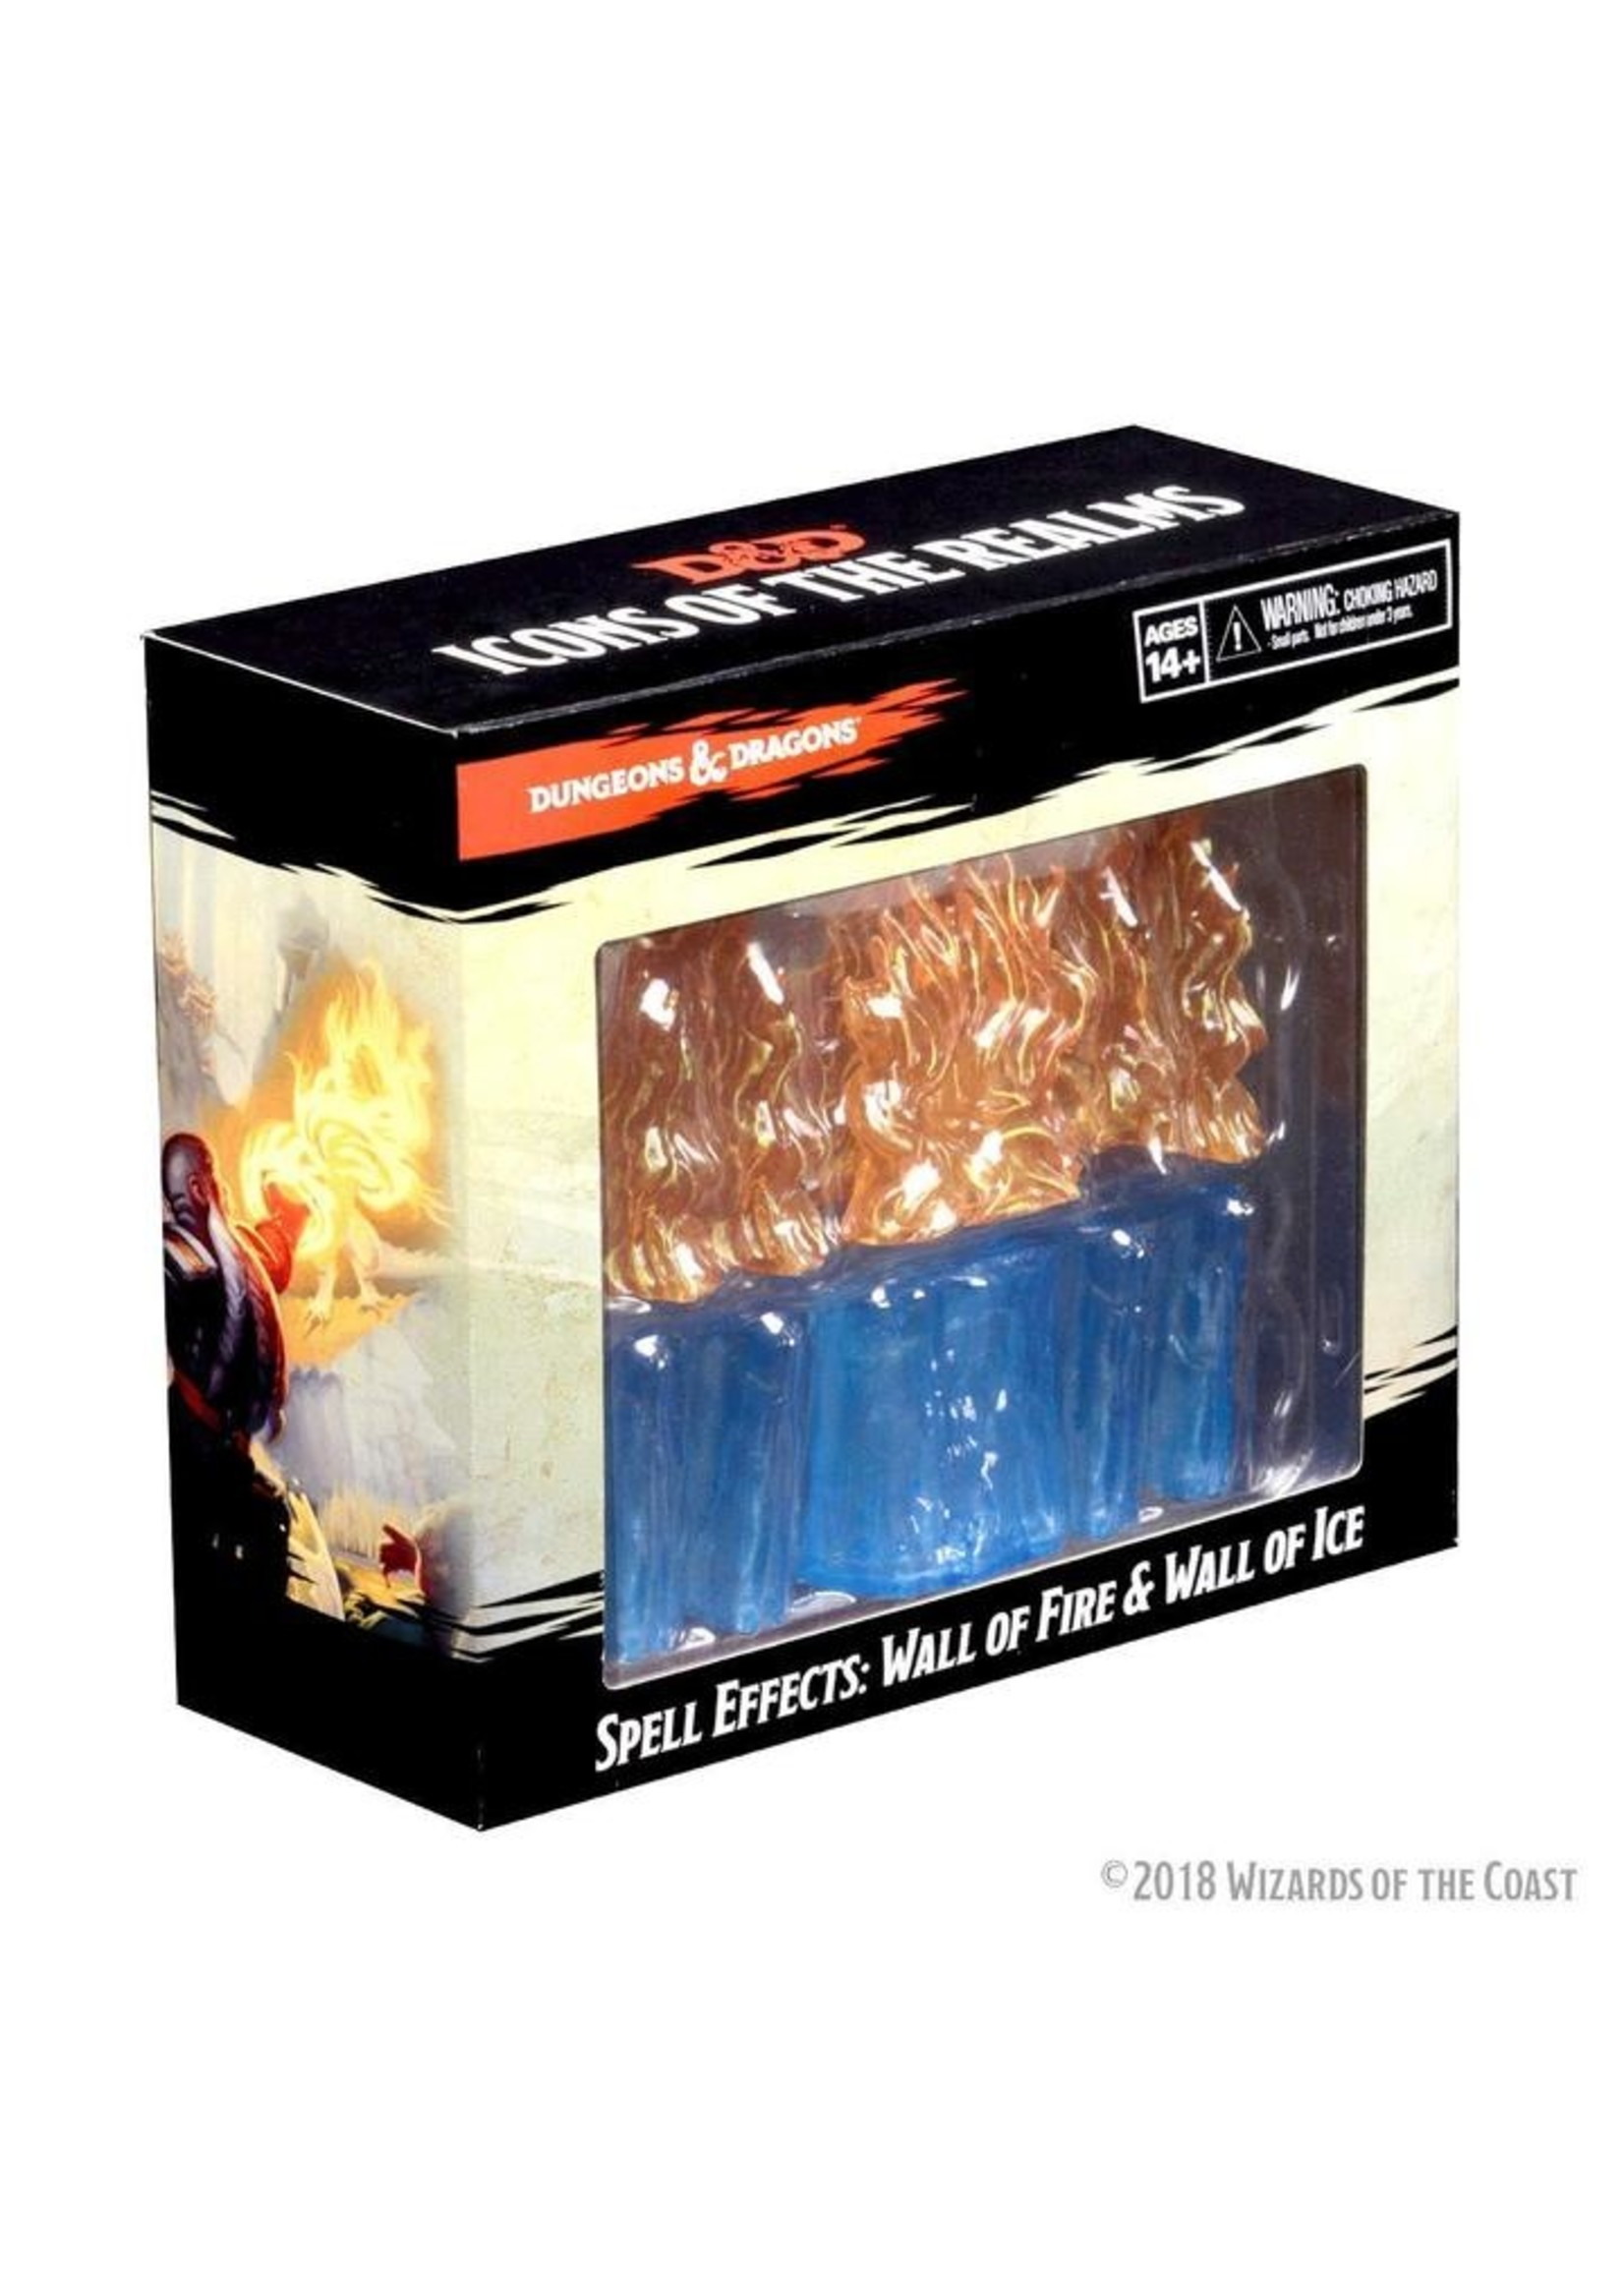 Dungeons & Dragons Spell Effects: Wall of Fire & Wall of Ice